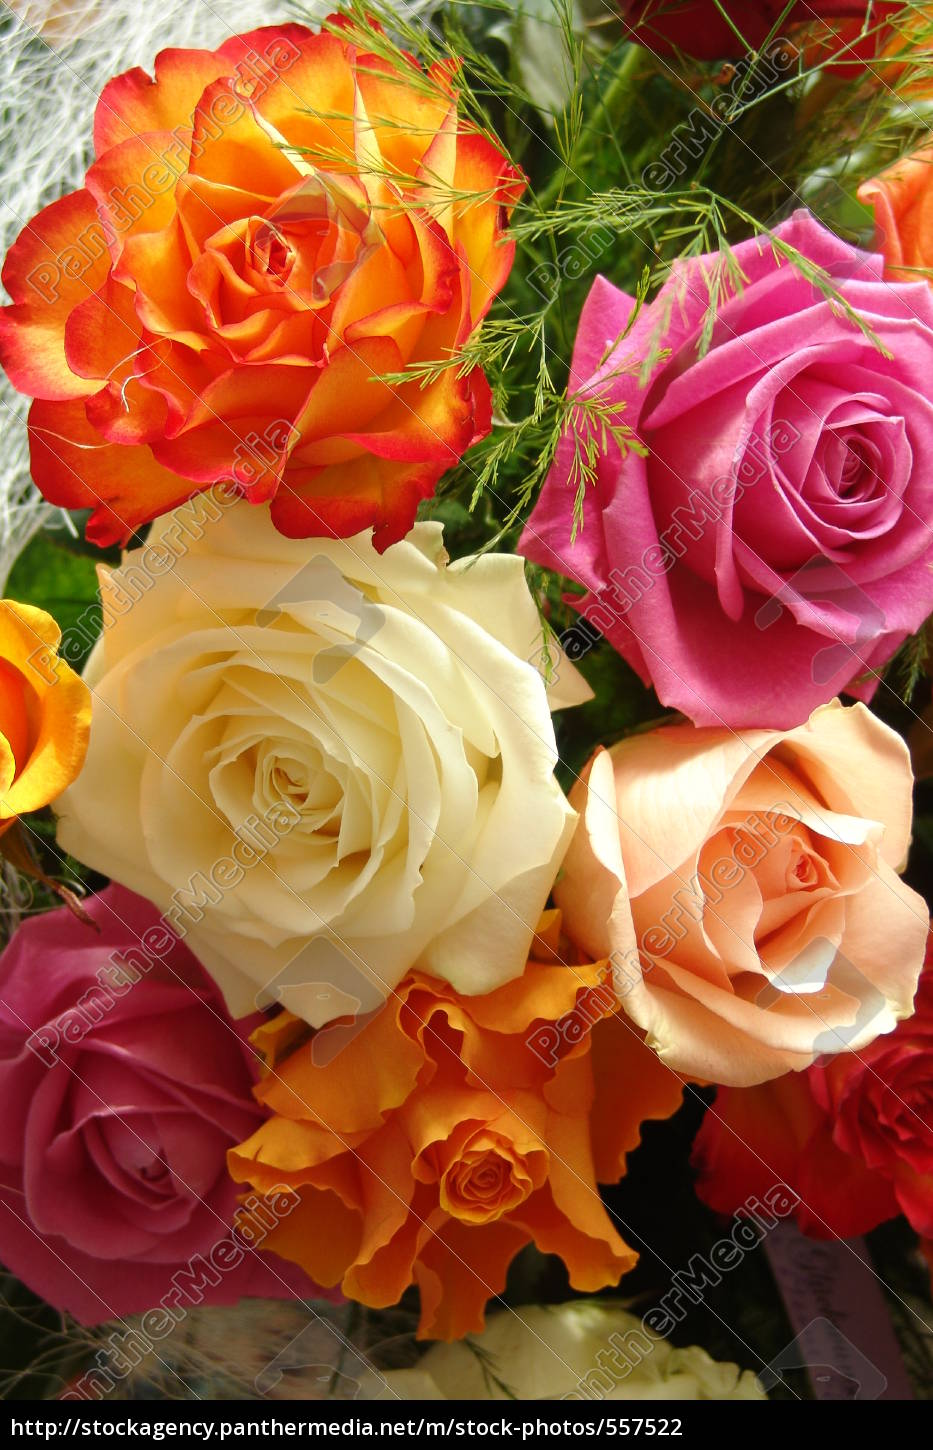 a, colorful, bouquet, of, roses - 557522